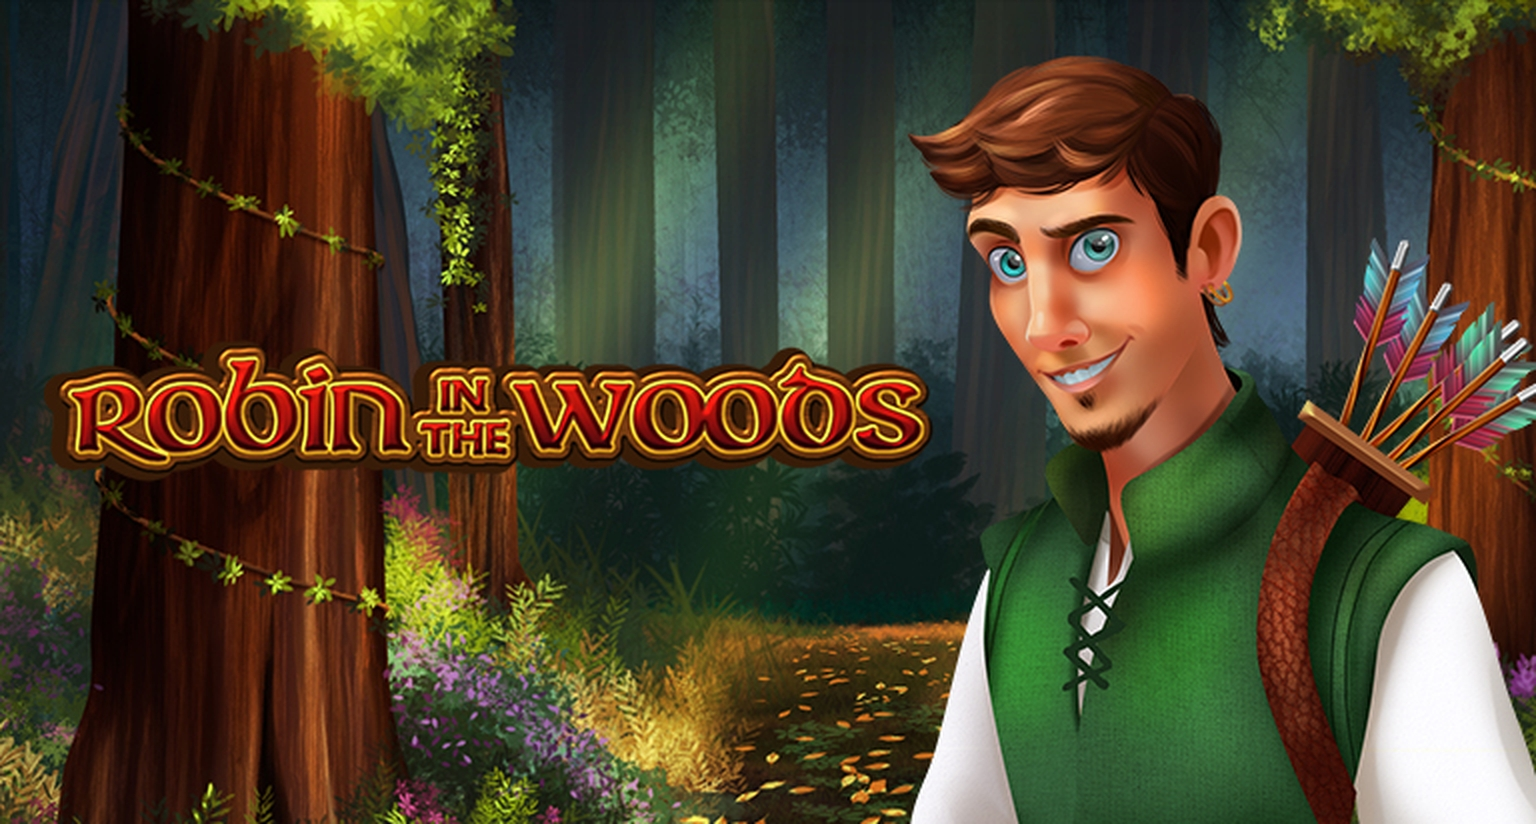 Robin in the Woods (Arrows Edge) Online Slot Demo Game by Arrows Edge